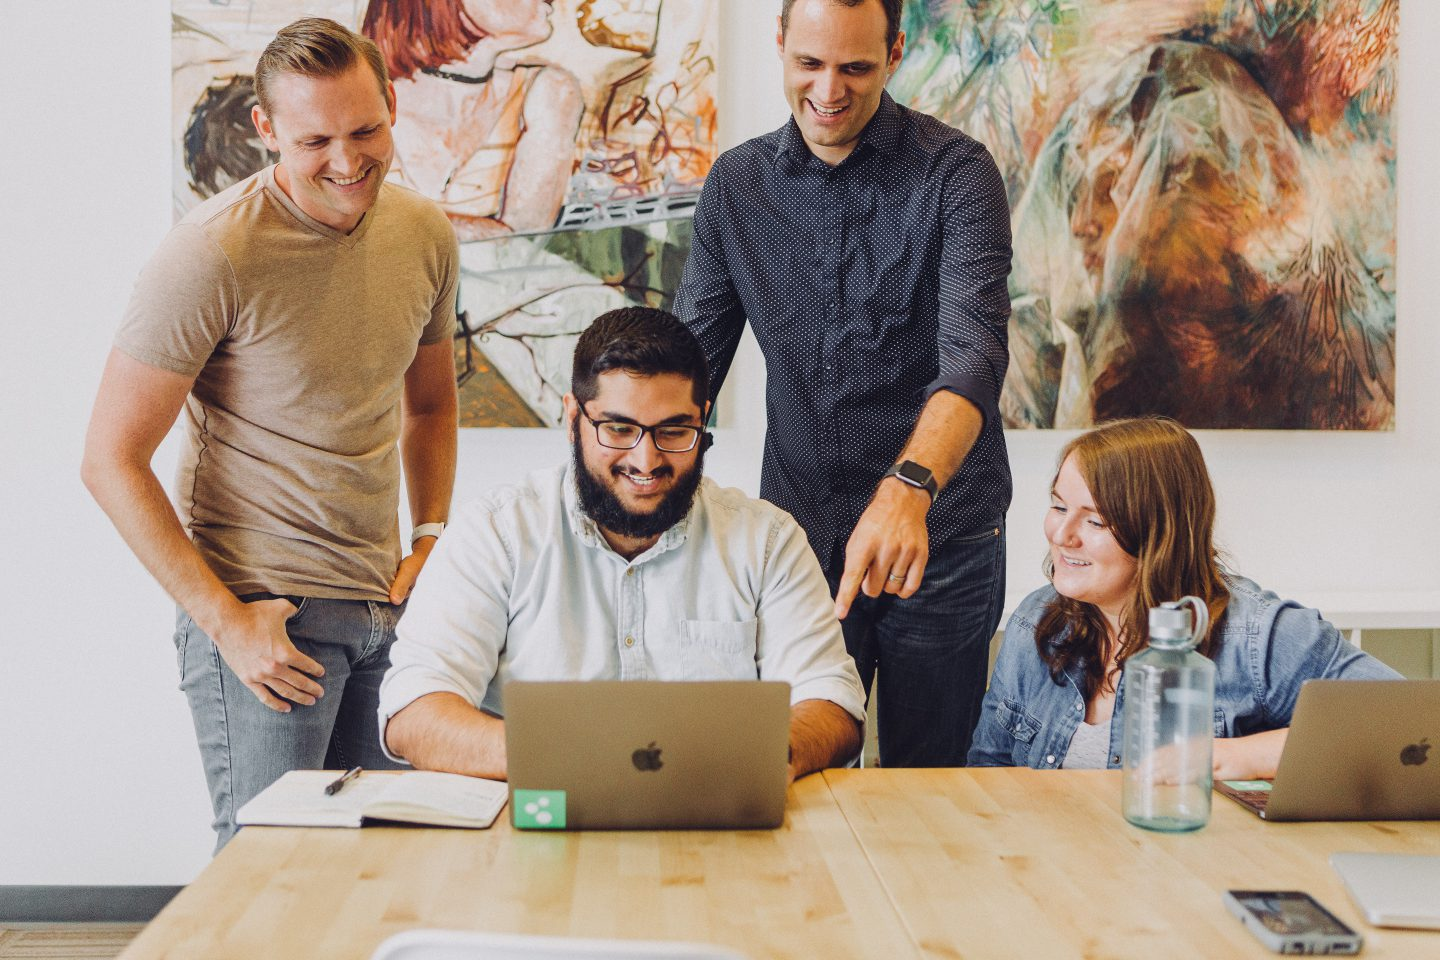 Modern Workforce Expectations and How Socially Aware Businesses Can Win the War for Talent